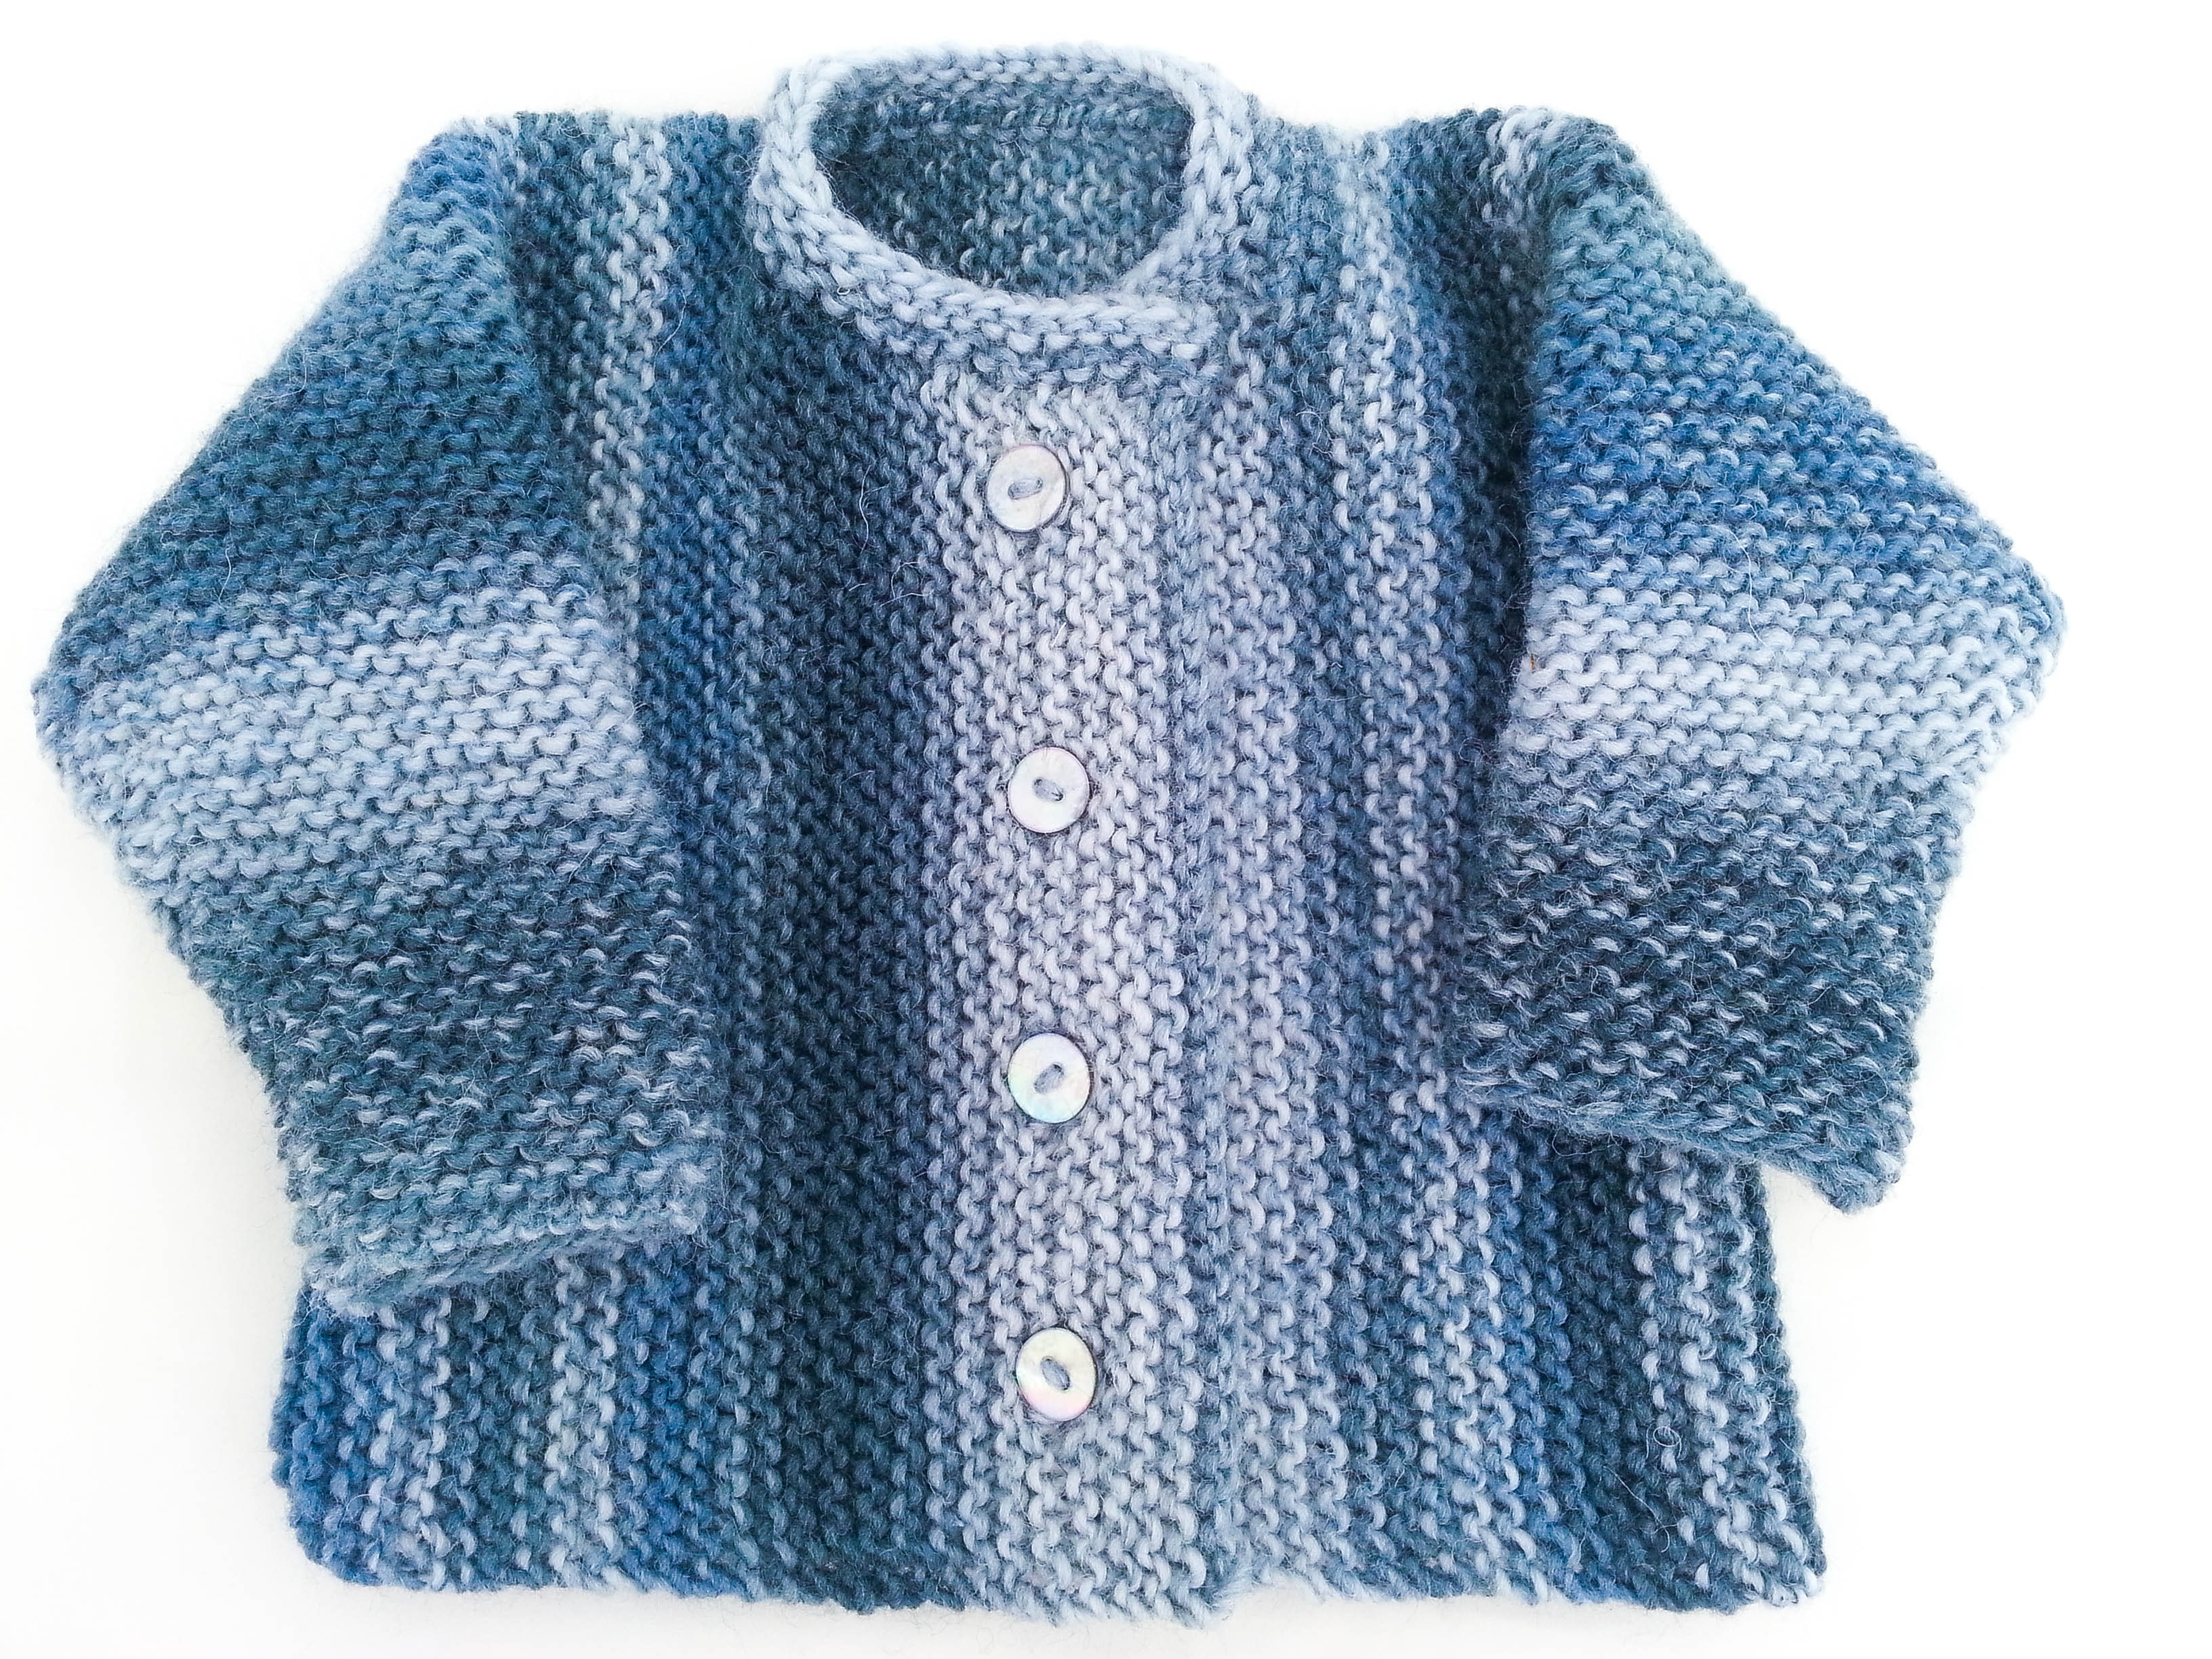 Baby Coat Knitting Pattern Knitting Pattern Garter Stitch Ba Cardigan One Piece Ba Sweater 5 Sizes Easy Pattern Toddler Buttoned Sweater